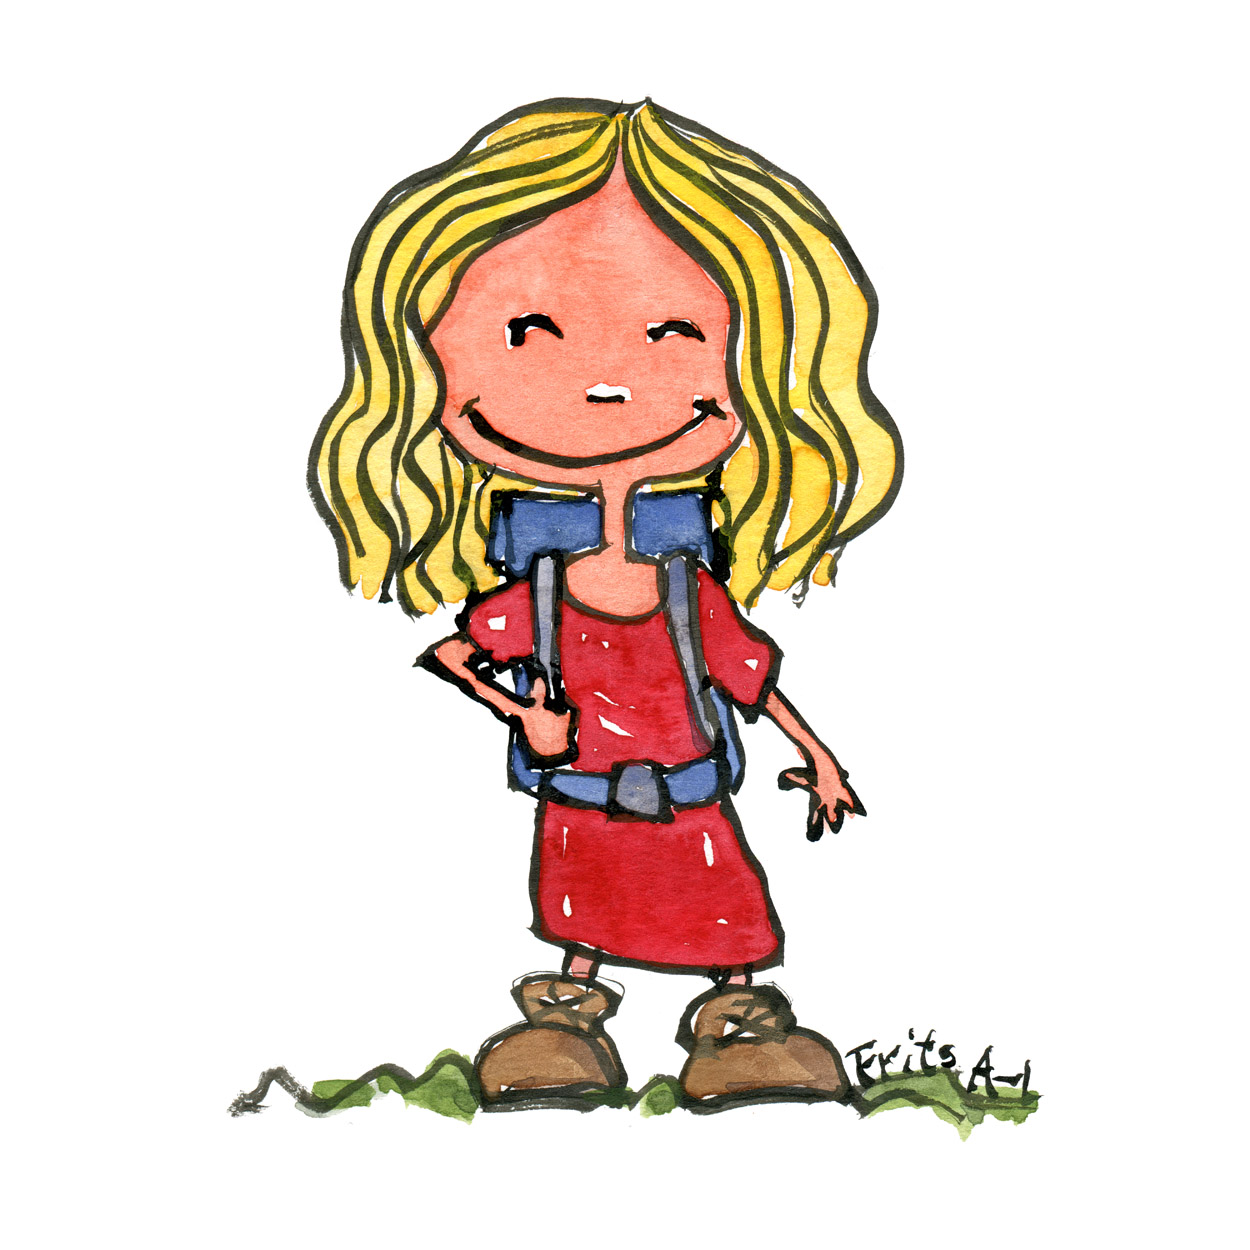 Illustration blond girl smiling with backpack and boots. Illustration by Frits Ahlefeldt